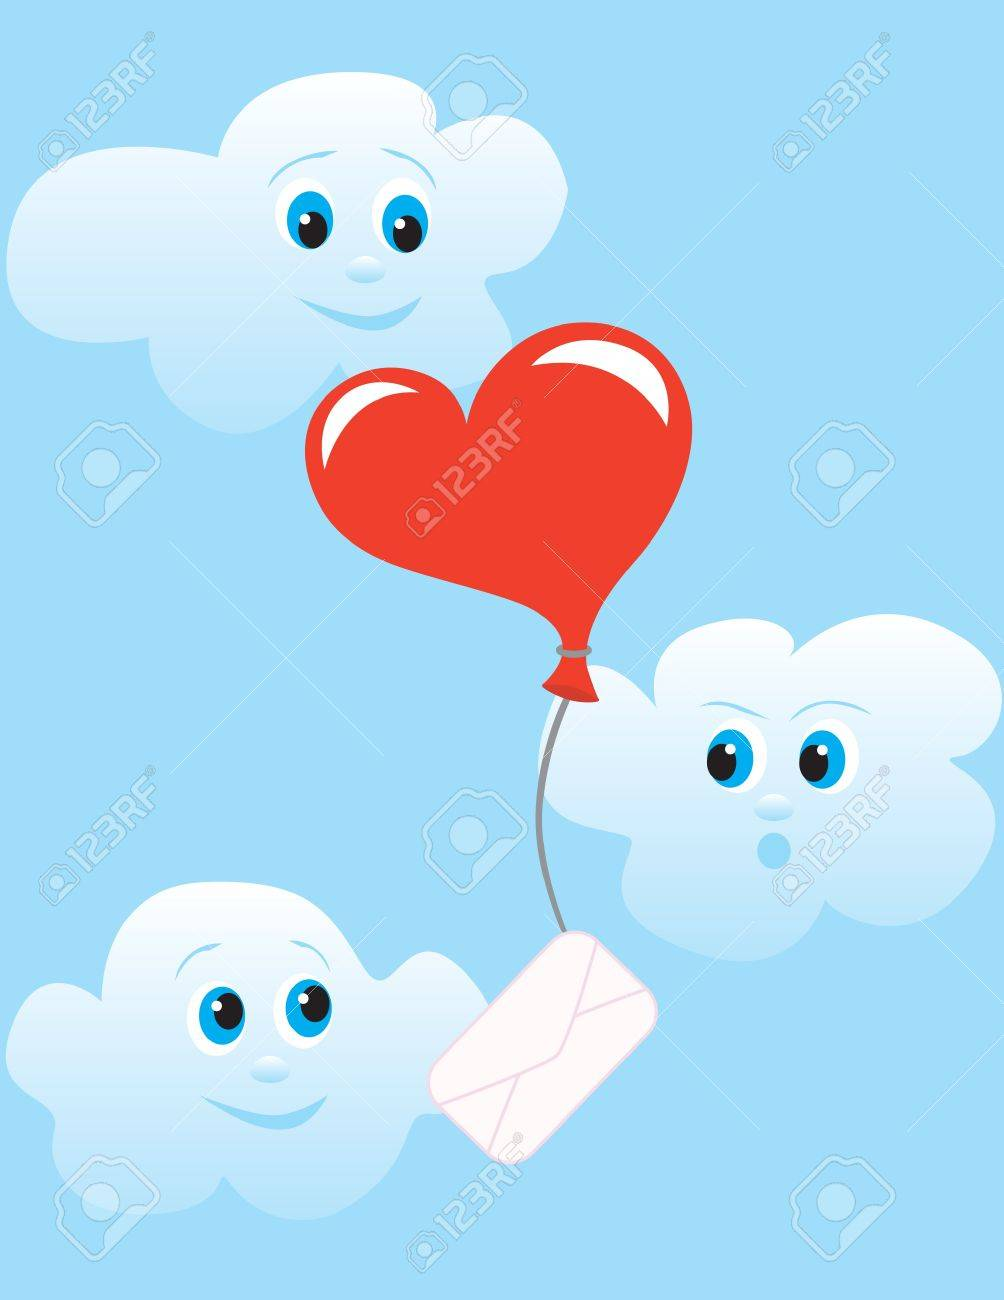 Shar as a heart personifying letter flies on sky to the addressee in surroundings playful clouds. Stock Vector - 9450316